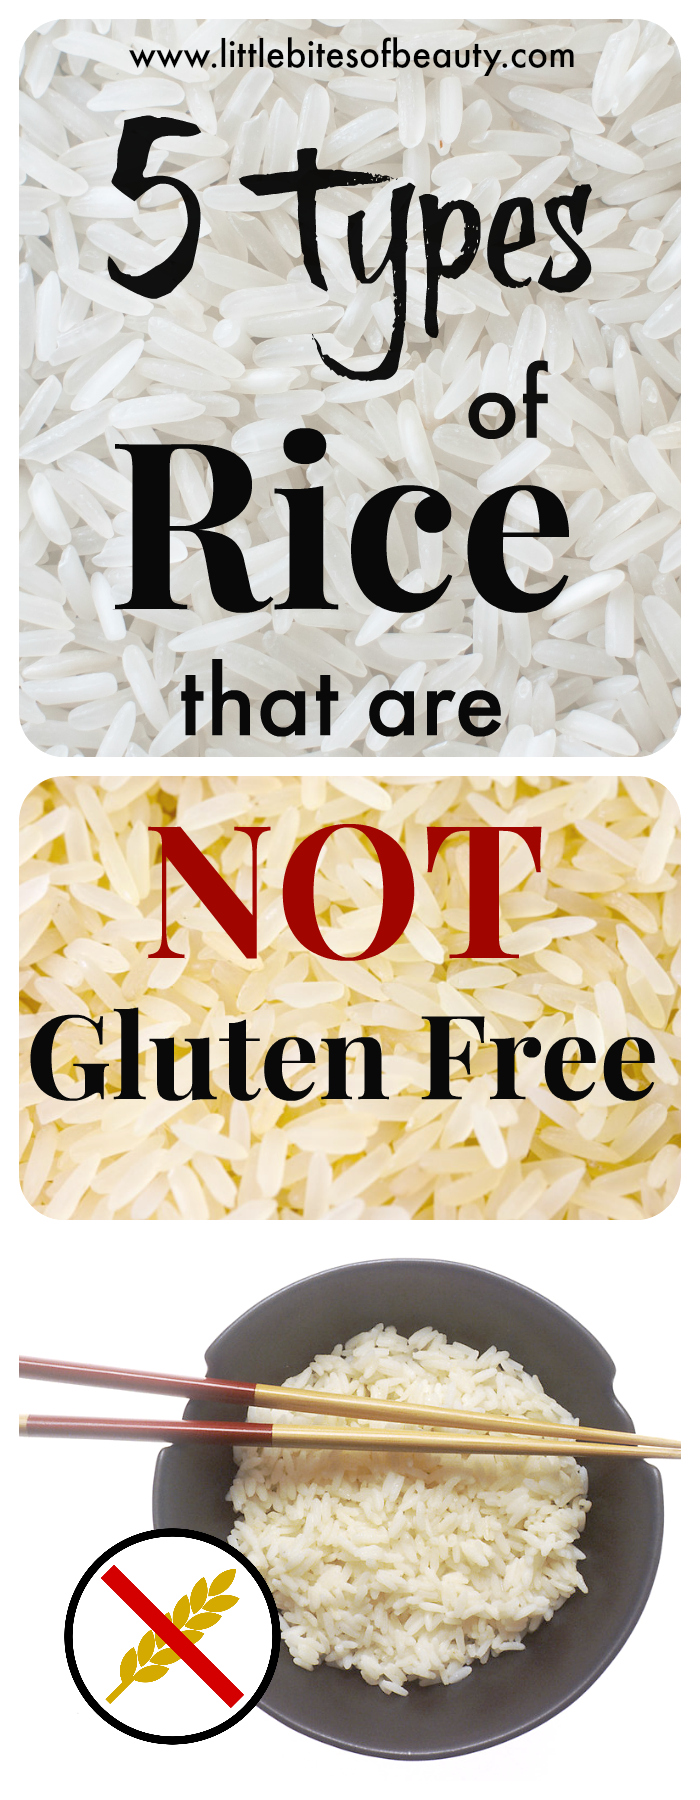 Is Rice Gluten Free Here's 5 Types of Rice that ARE NOT Gluten Free